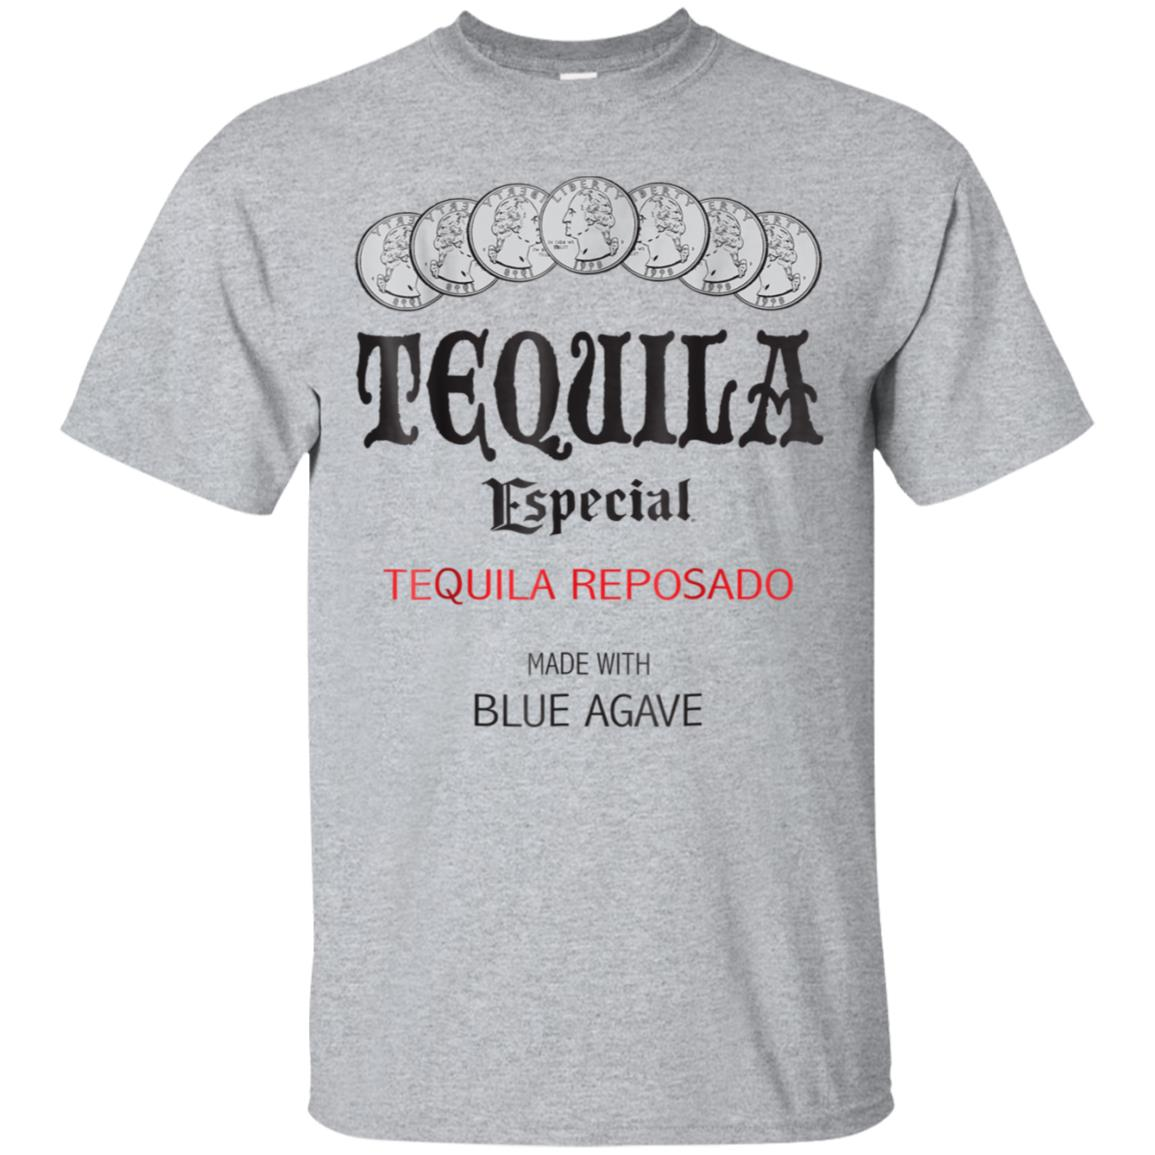 Tequila Lime Salt Halloween Costume T Shirt Group Matching 99promocode